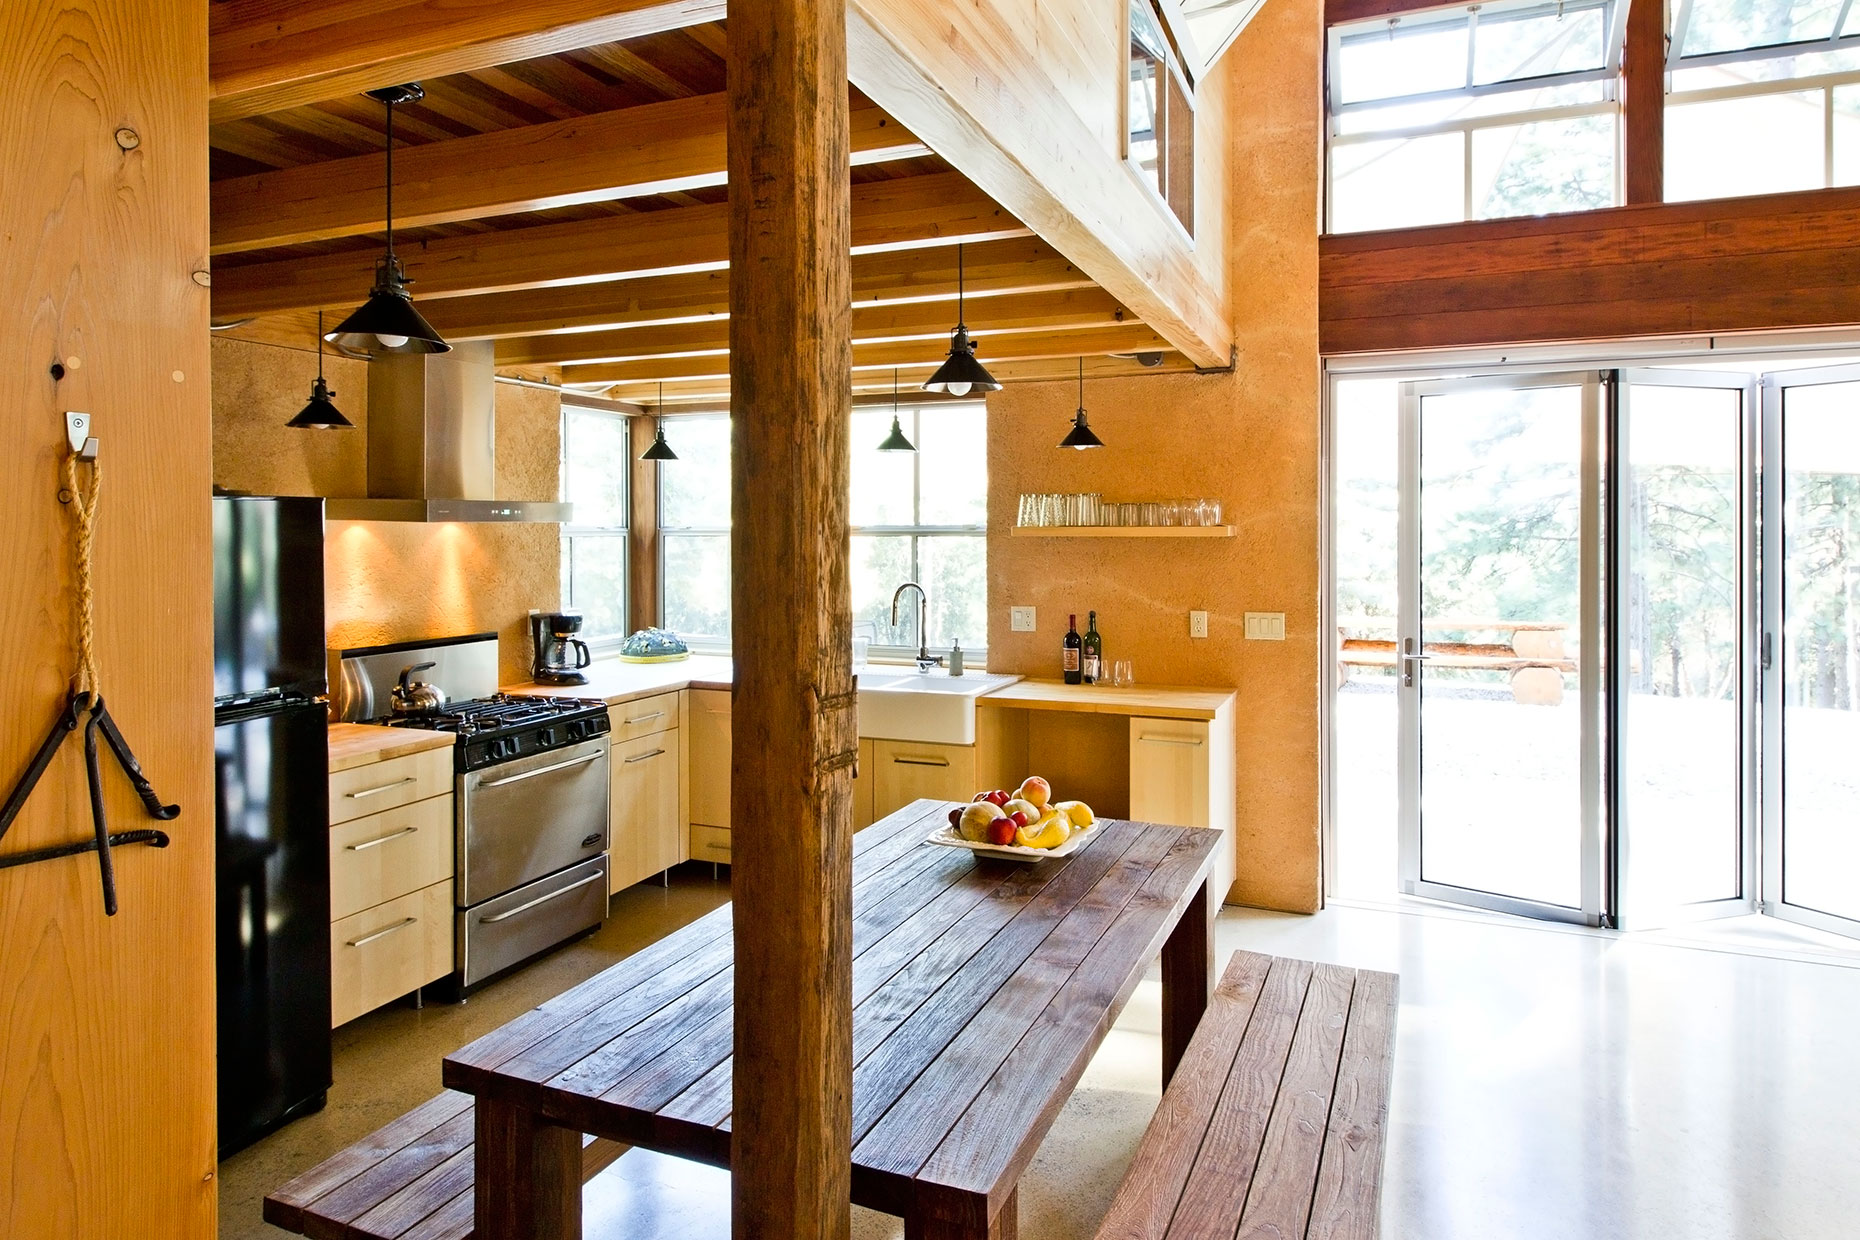 strawbale-cabin-kitchen-arkin-tilt-architects.jpg